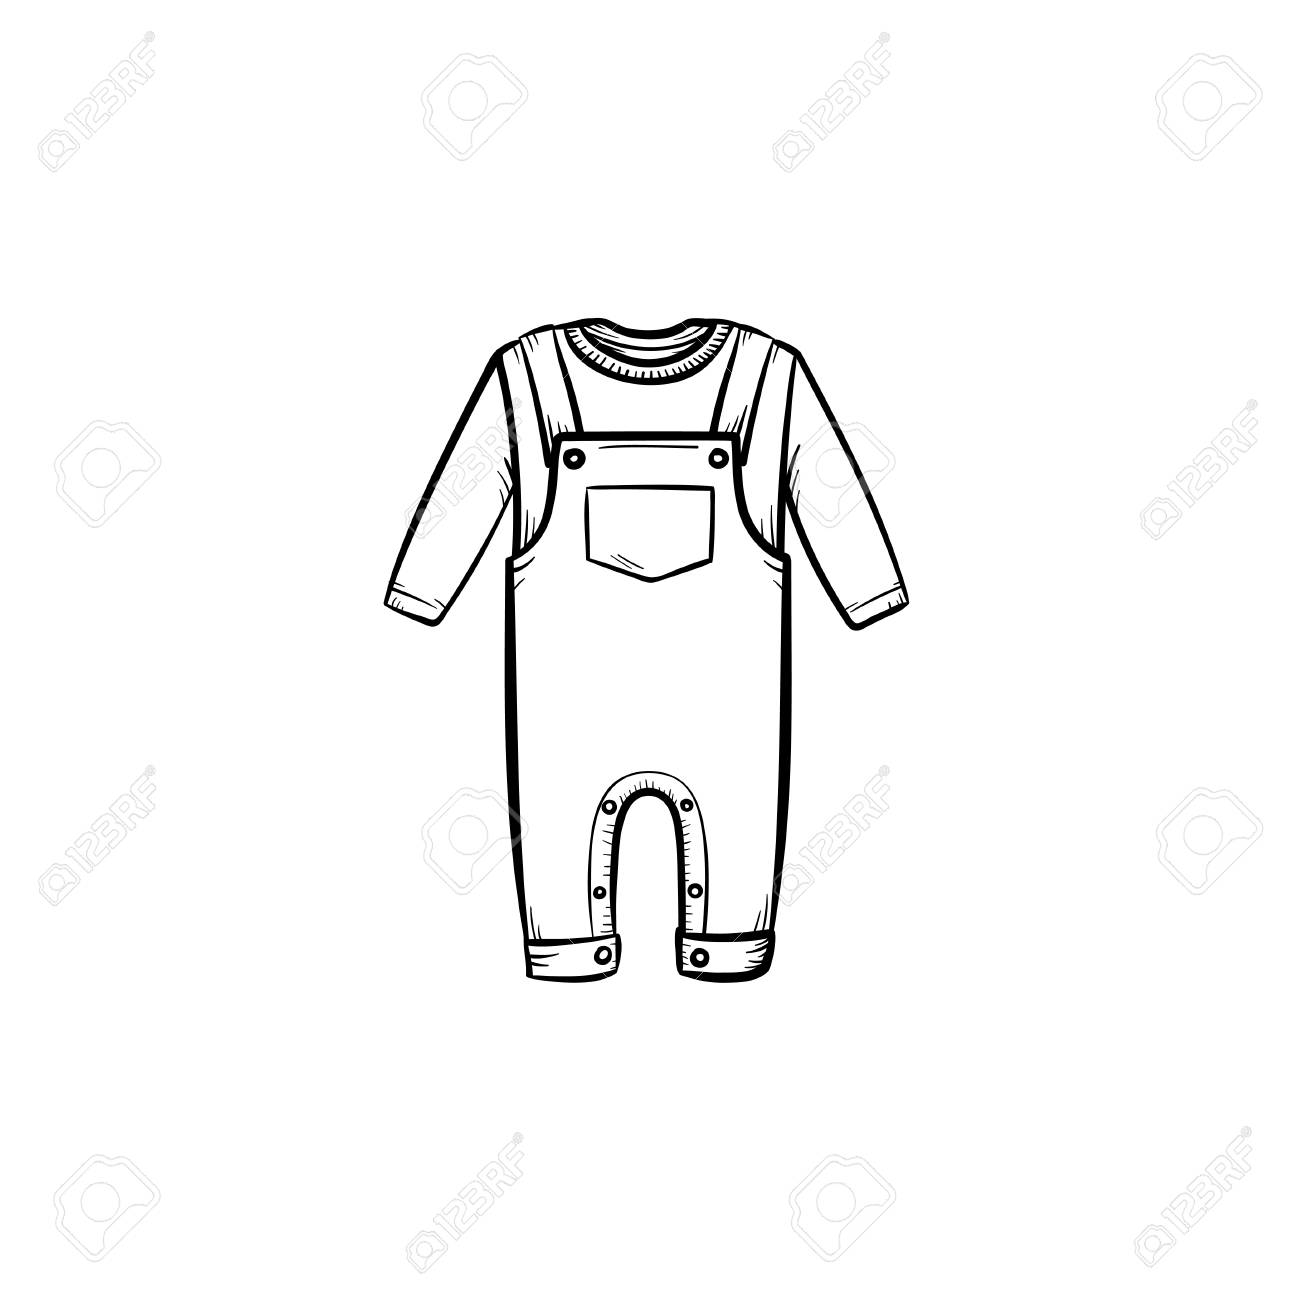 8d297c301 Baby Shirt And Pants Hand Drawn Outline Doodle Icon. Baby Clothing ...